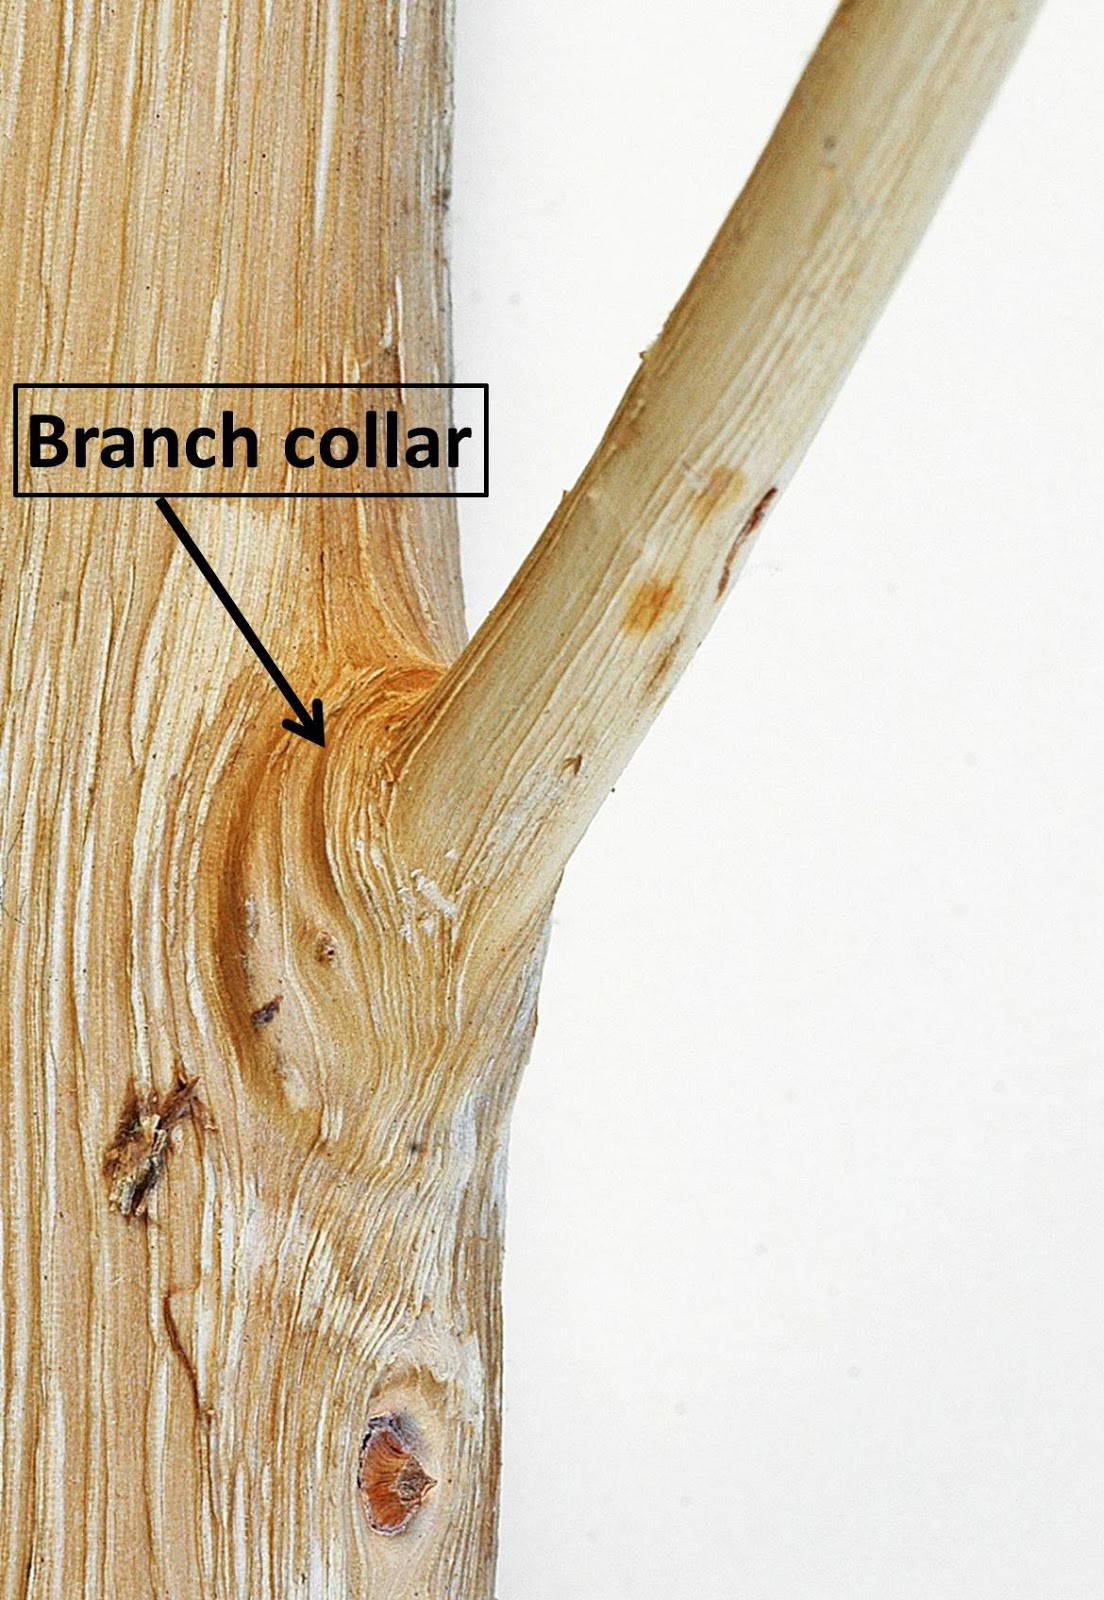 Northern Pecans: Anatomy of the branch collar